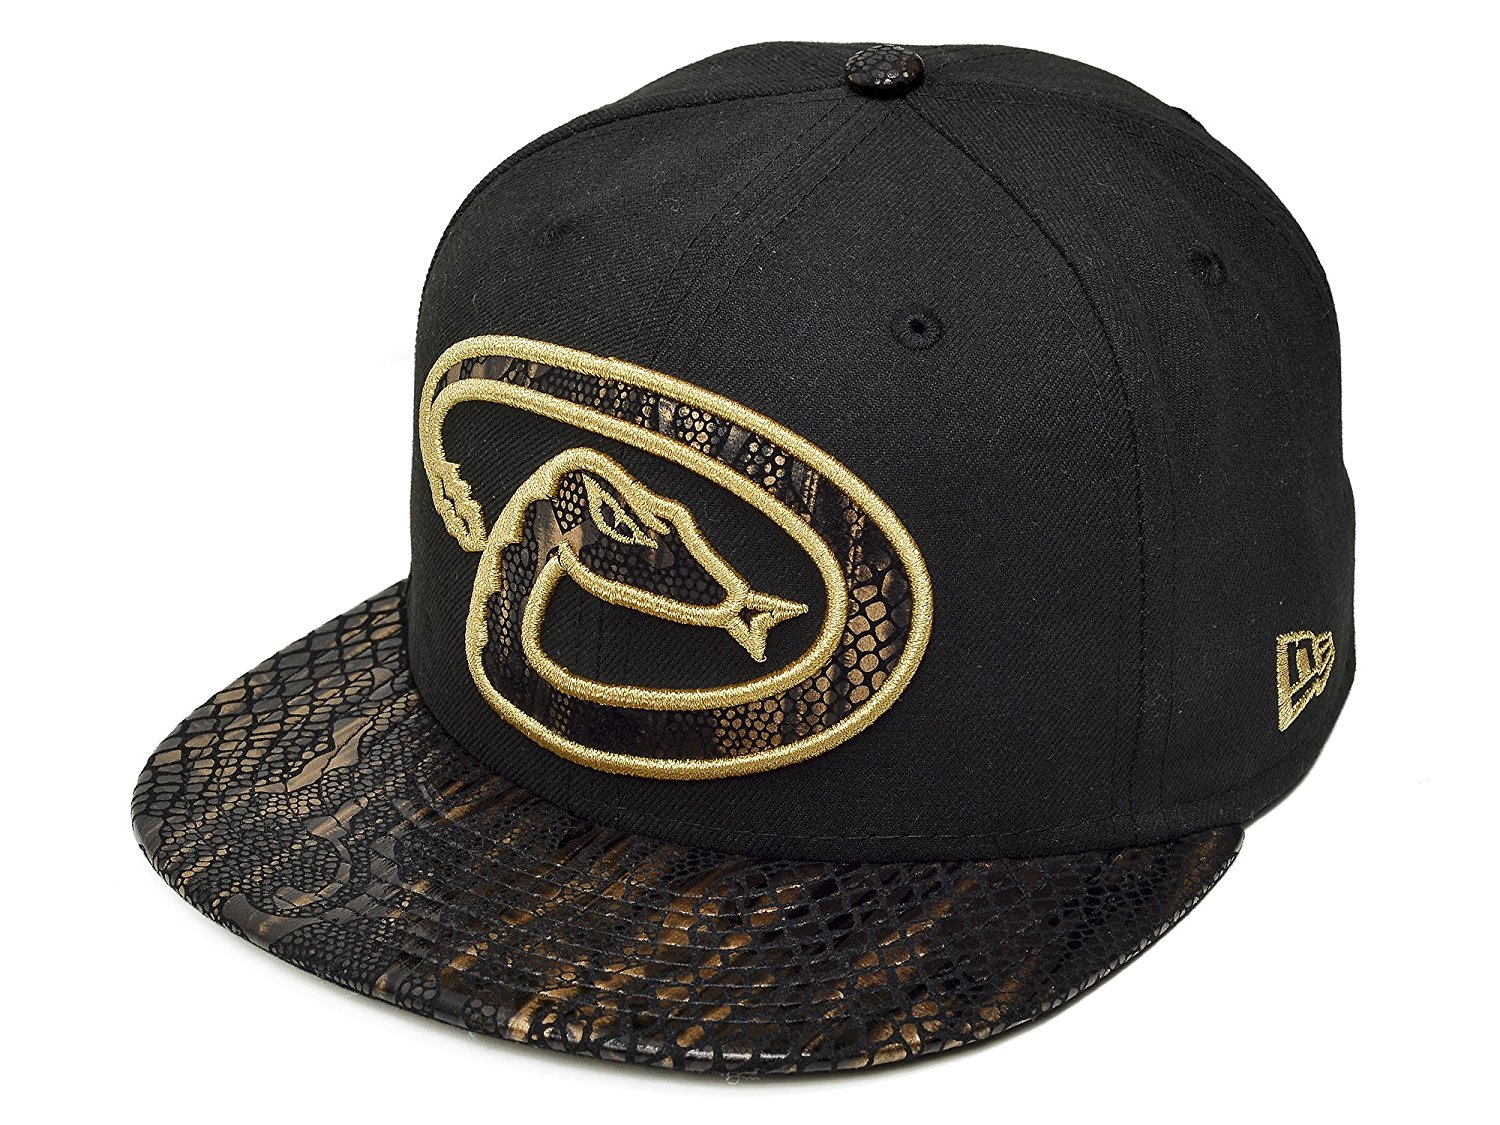 b4d4a4c1b0b5cd ... shop get quotations new era 59fifty new york yankees metallic snake  vize mens fitted hat 84a43